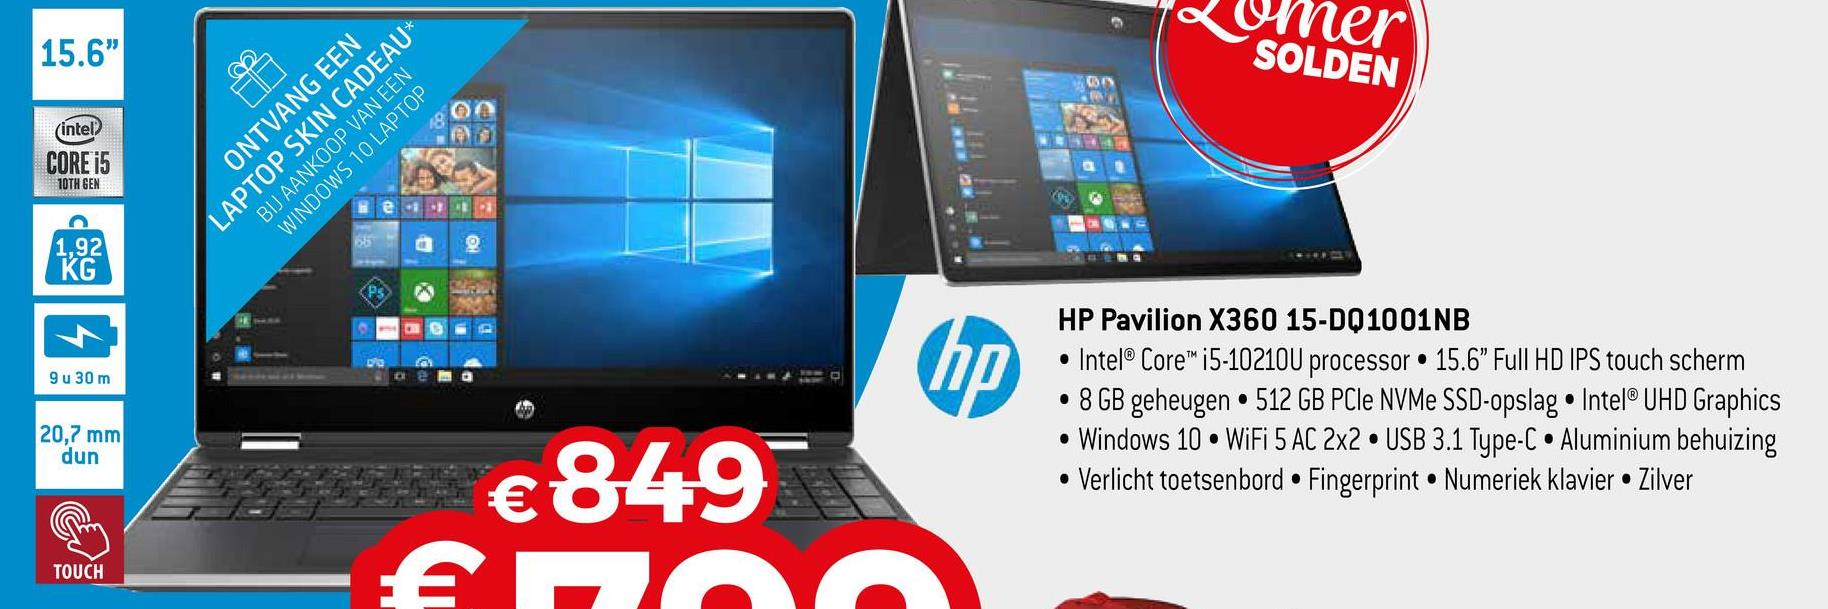 "er 15.6"" SOLDEN (intel CORE i5 10TH GEN ONTVANG EEN LAPTOP SKIN CADEAU* BIJ AANKOOP VAN EEN WINDOWS 10 LAPTOP 1,92 KG PS (hp 94 30 m HP Pavilion X360 15-DQ1001NB • Intel® Corei5-10210U processor 15.6"" Full HD IPS touch scherm 8 GB geheugen • 512 GB PCIe NVMe SSD-opslag • Intel® UHD Graphics • Windows 10 • WiFi 5 AC 2x2 USB 3.1 Type-C • Aluminium behuizing • Verlicht toetsenbord • Fingerprint. Numeriek klavier Zilver 20,7 mm dun €849 172 TOUCH"